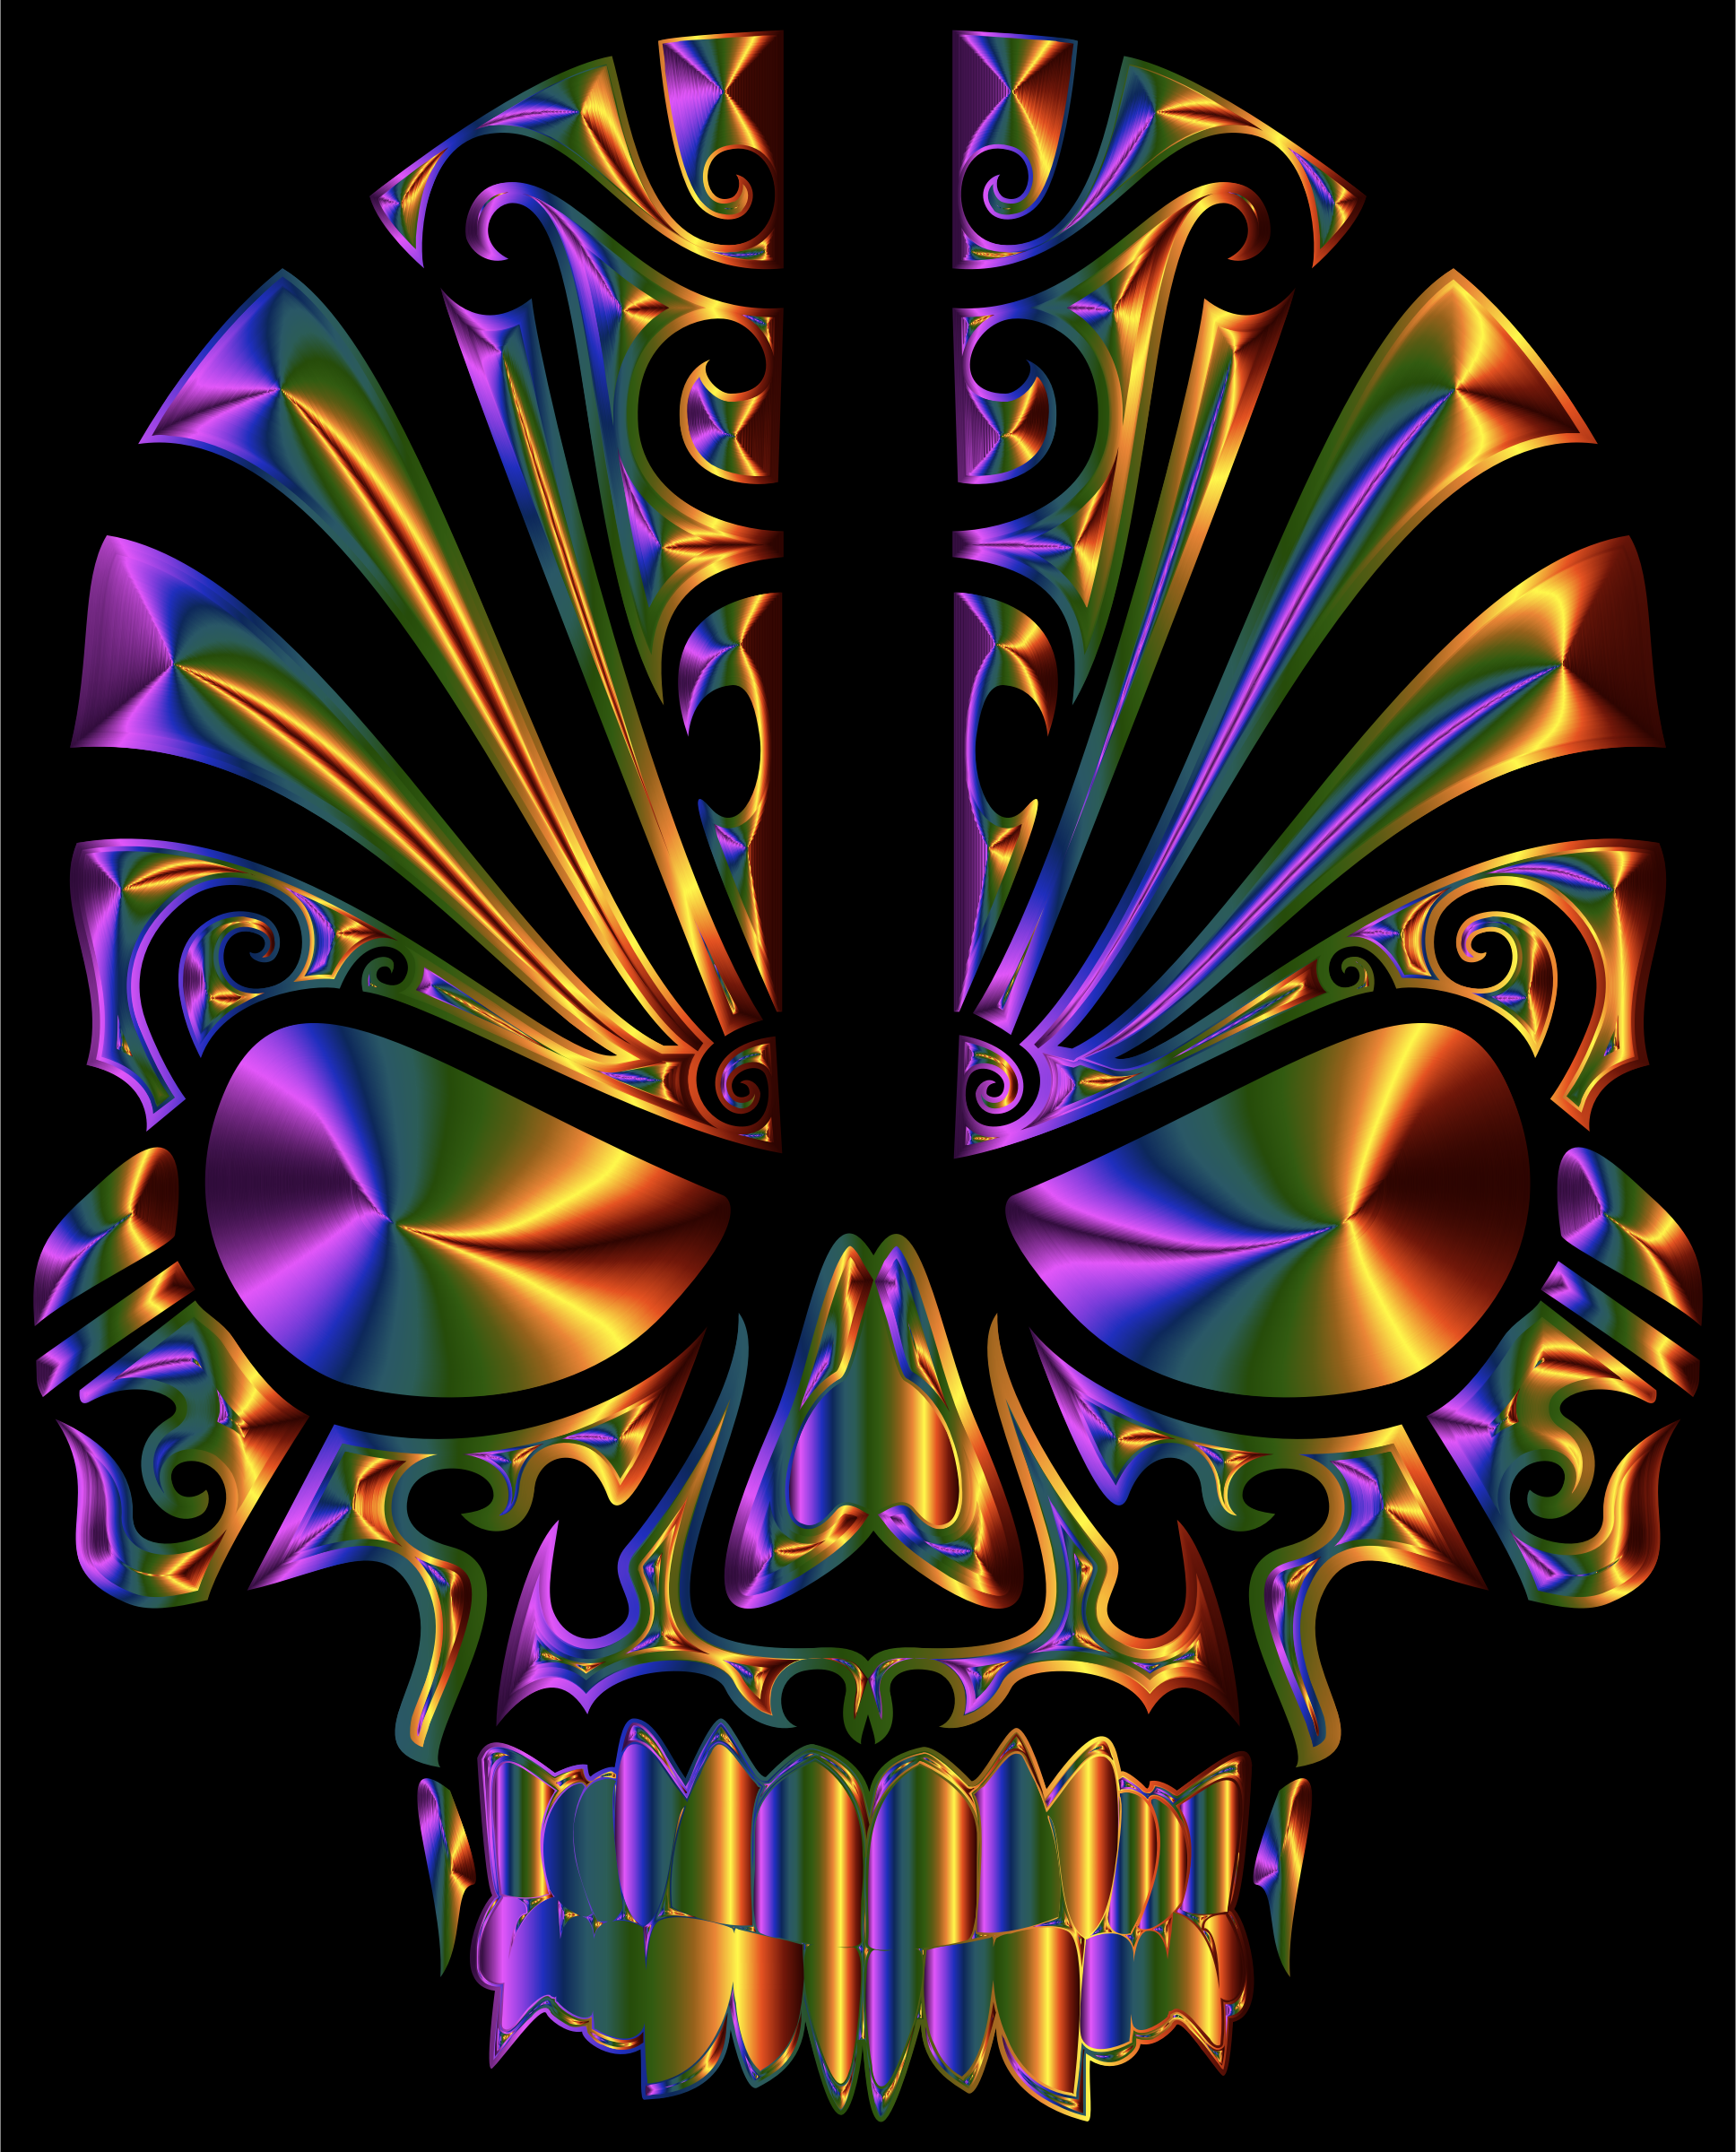 Tribal Skull Silhouette 2 Chromatic by GDJ